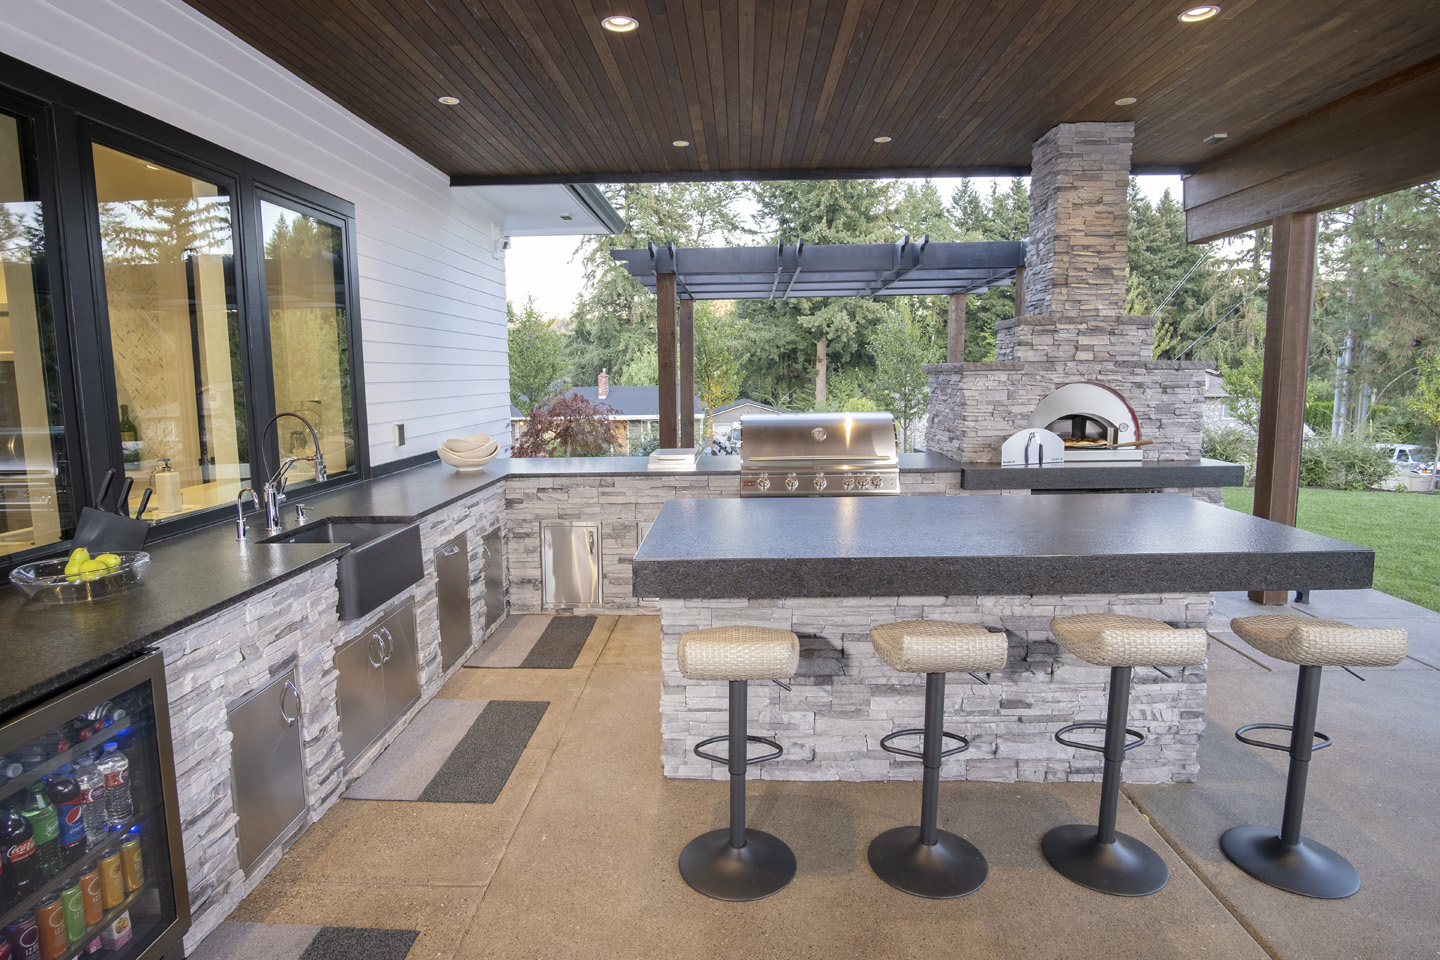 Outdoor Kitchen Bar & Utility Island